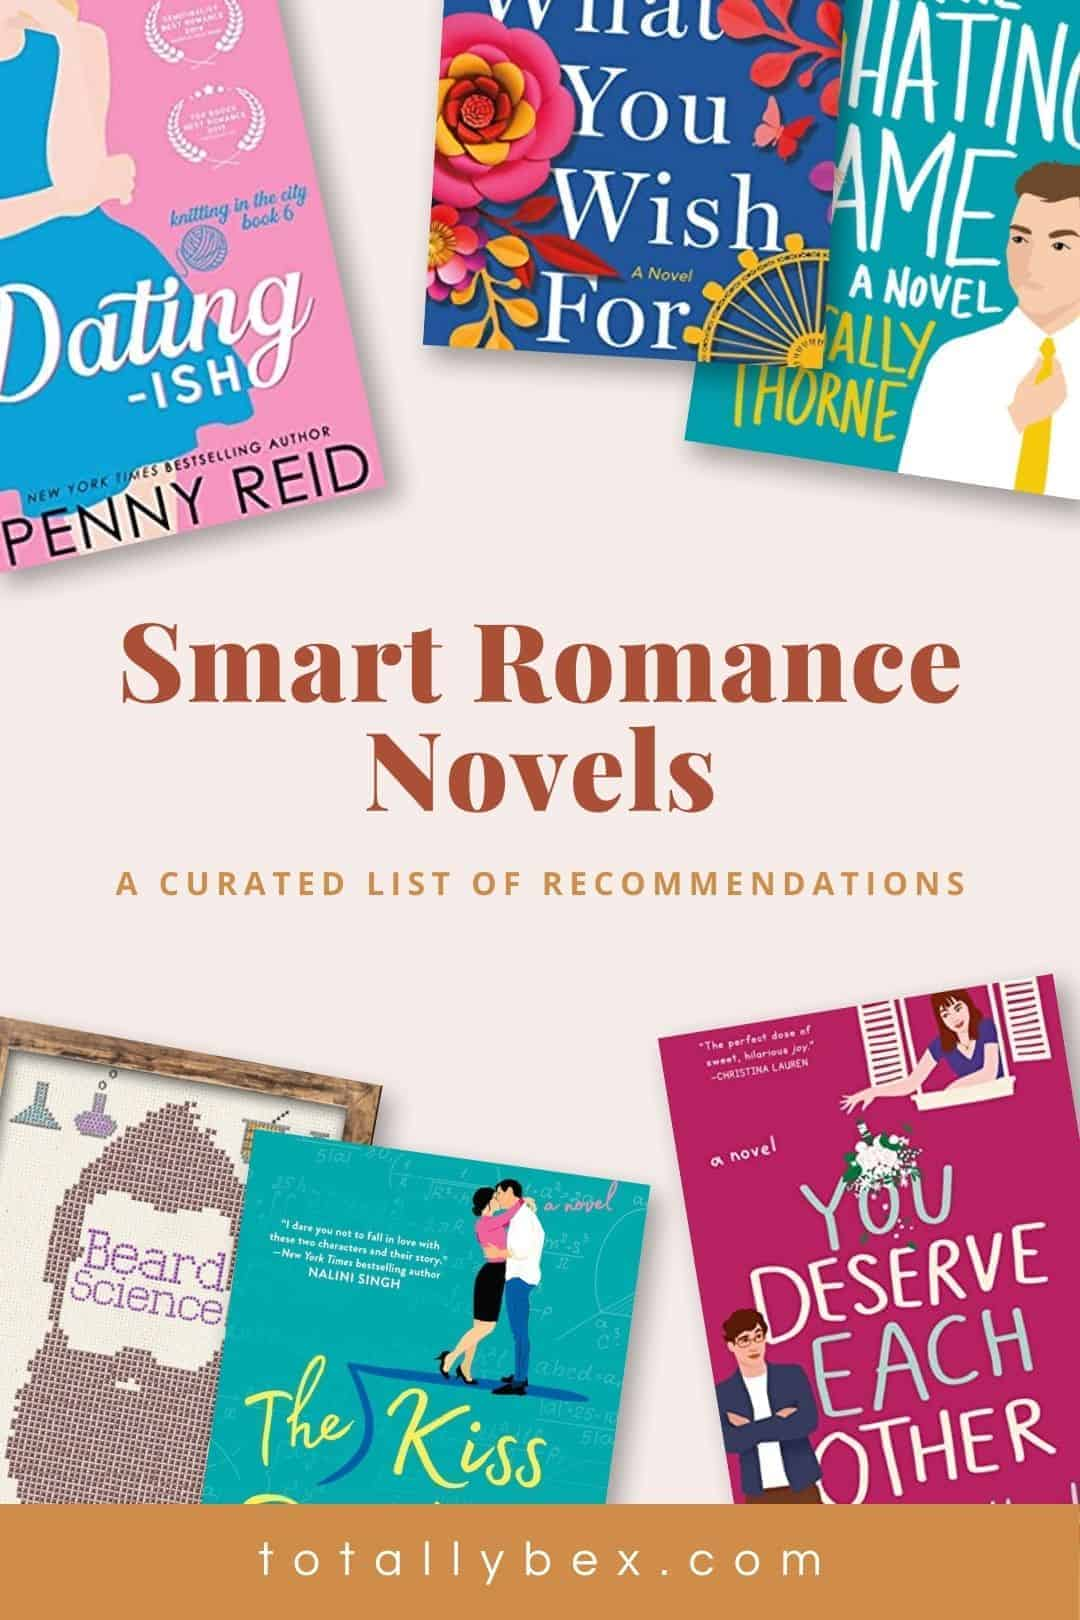 Smart Romance Novels book list is a curated list of Smart Romance Books recommended by book blogger Totally Bex